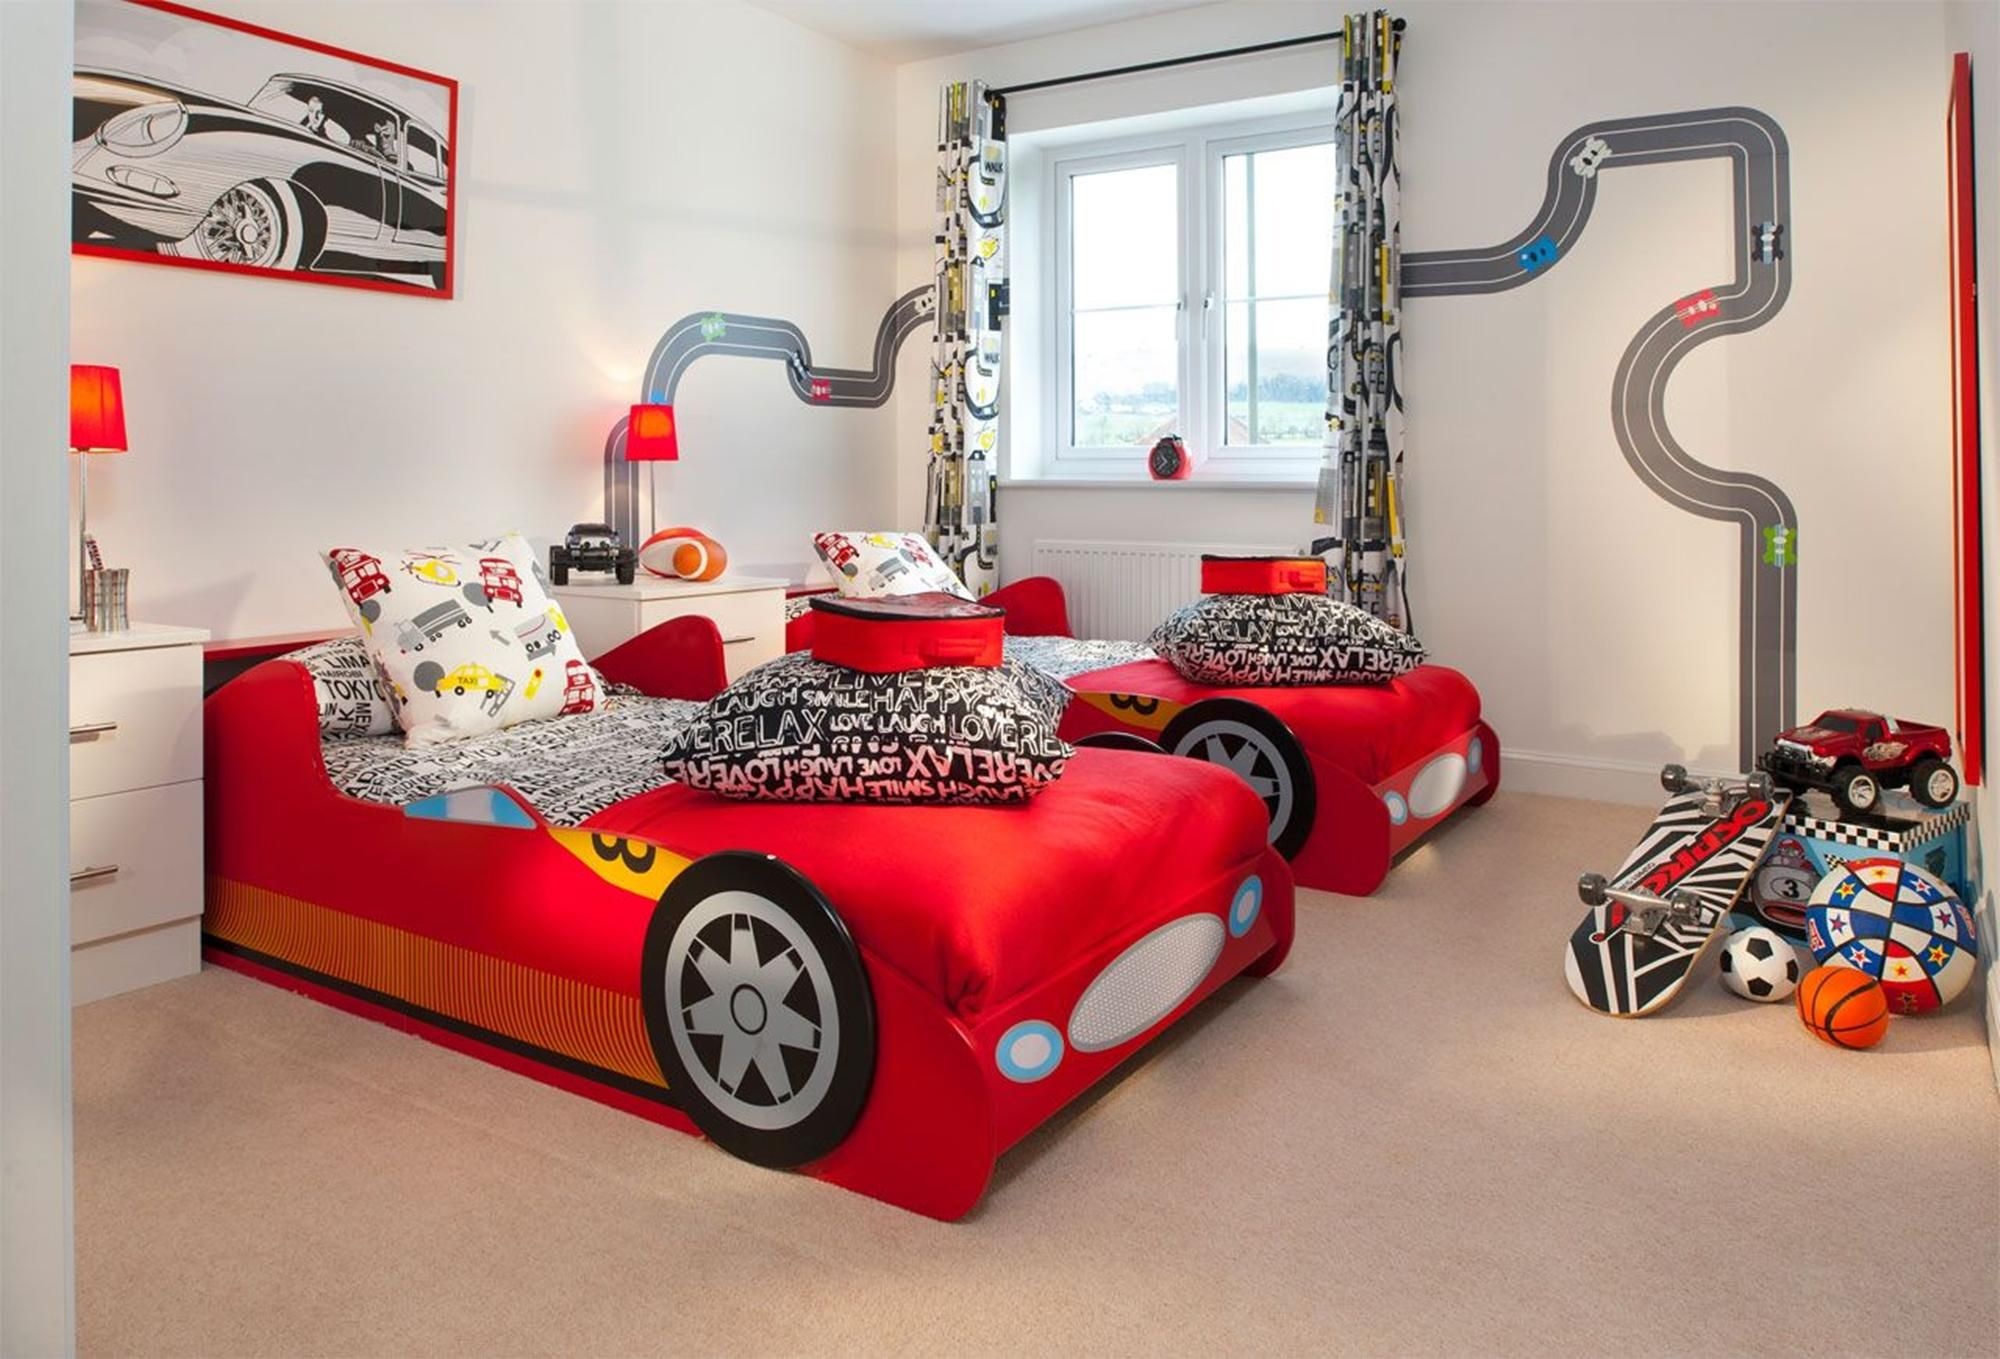 Boys car bedroom | BABYS ROOMS | Pinterest | Boys car bedroom, Car ...